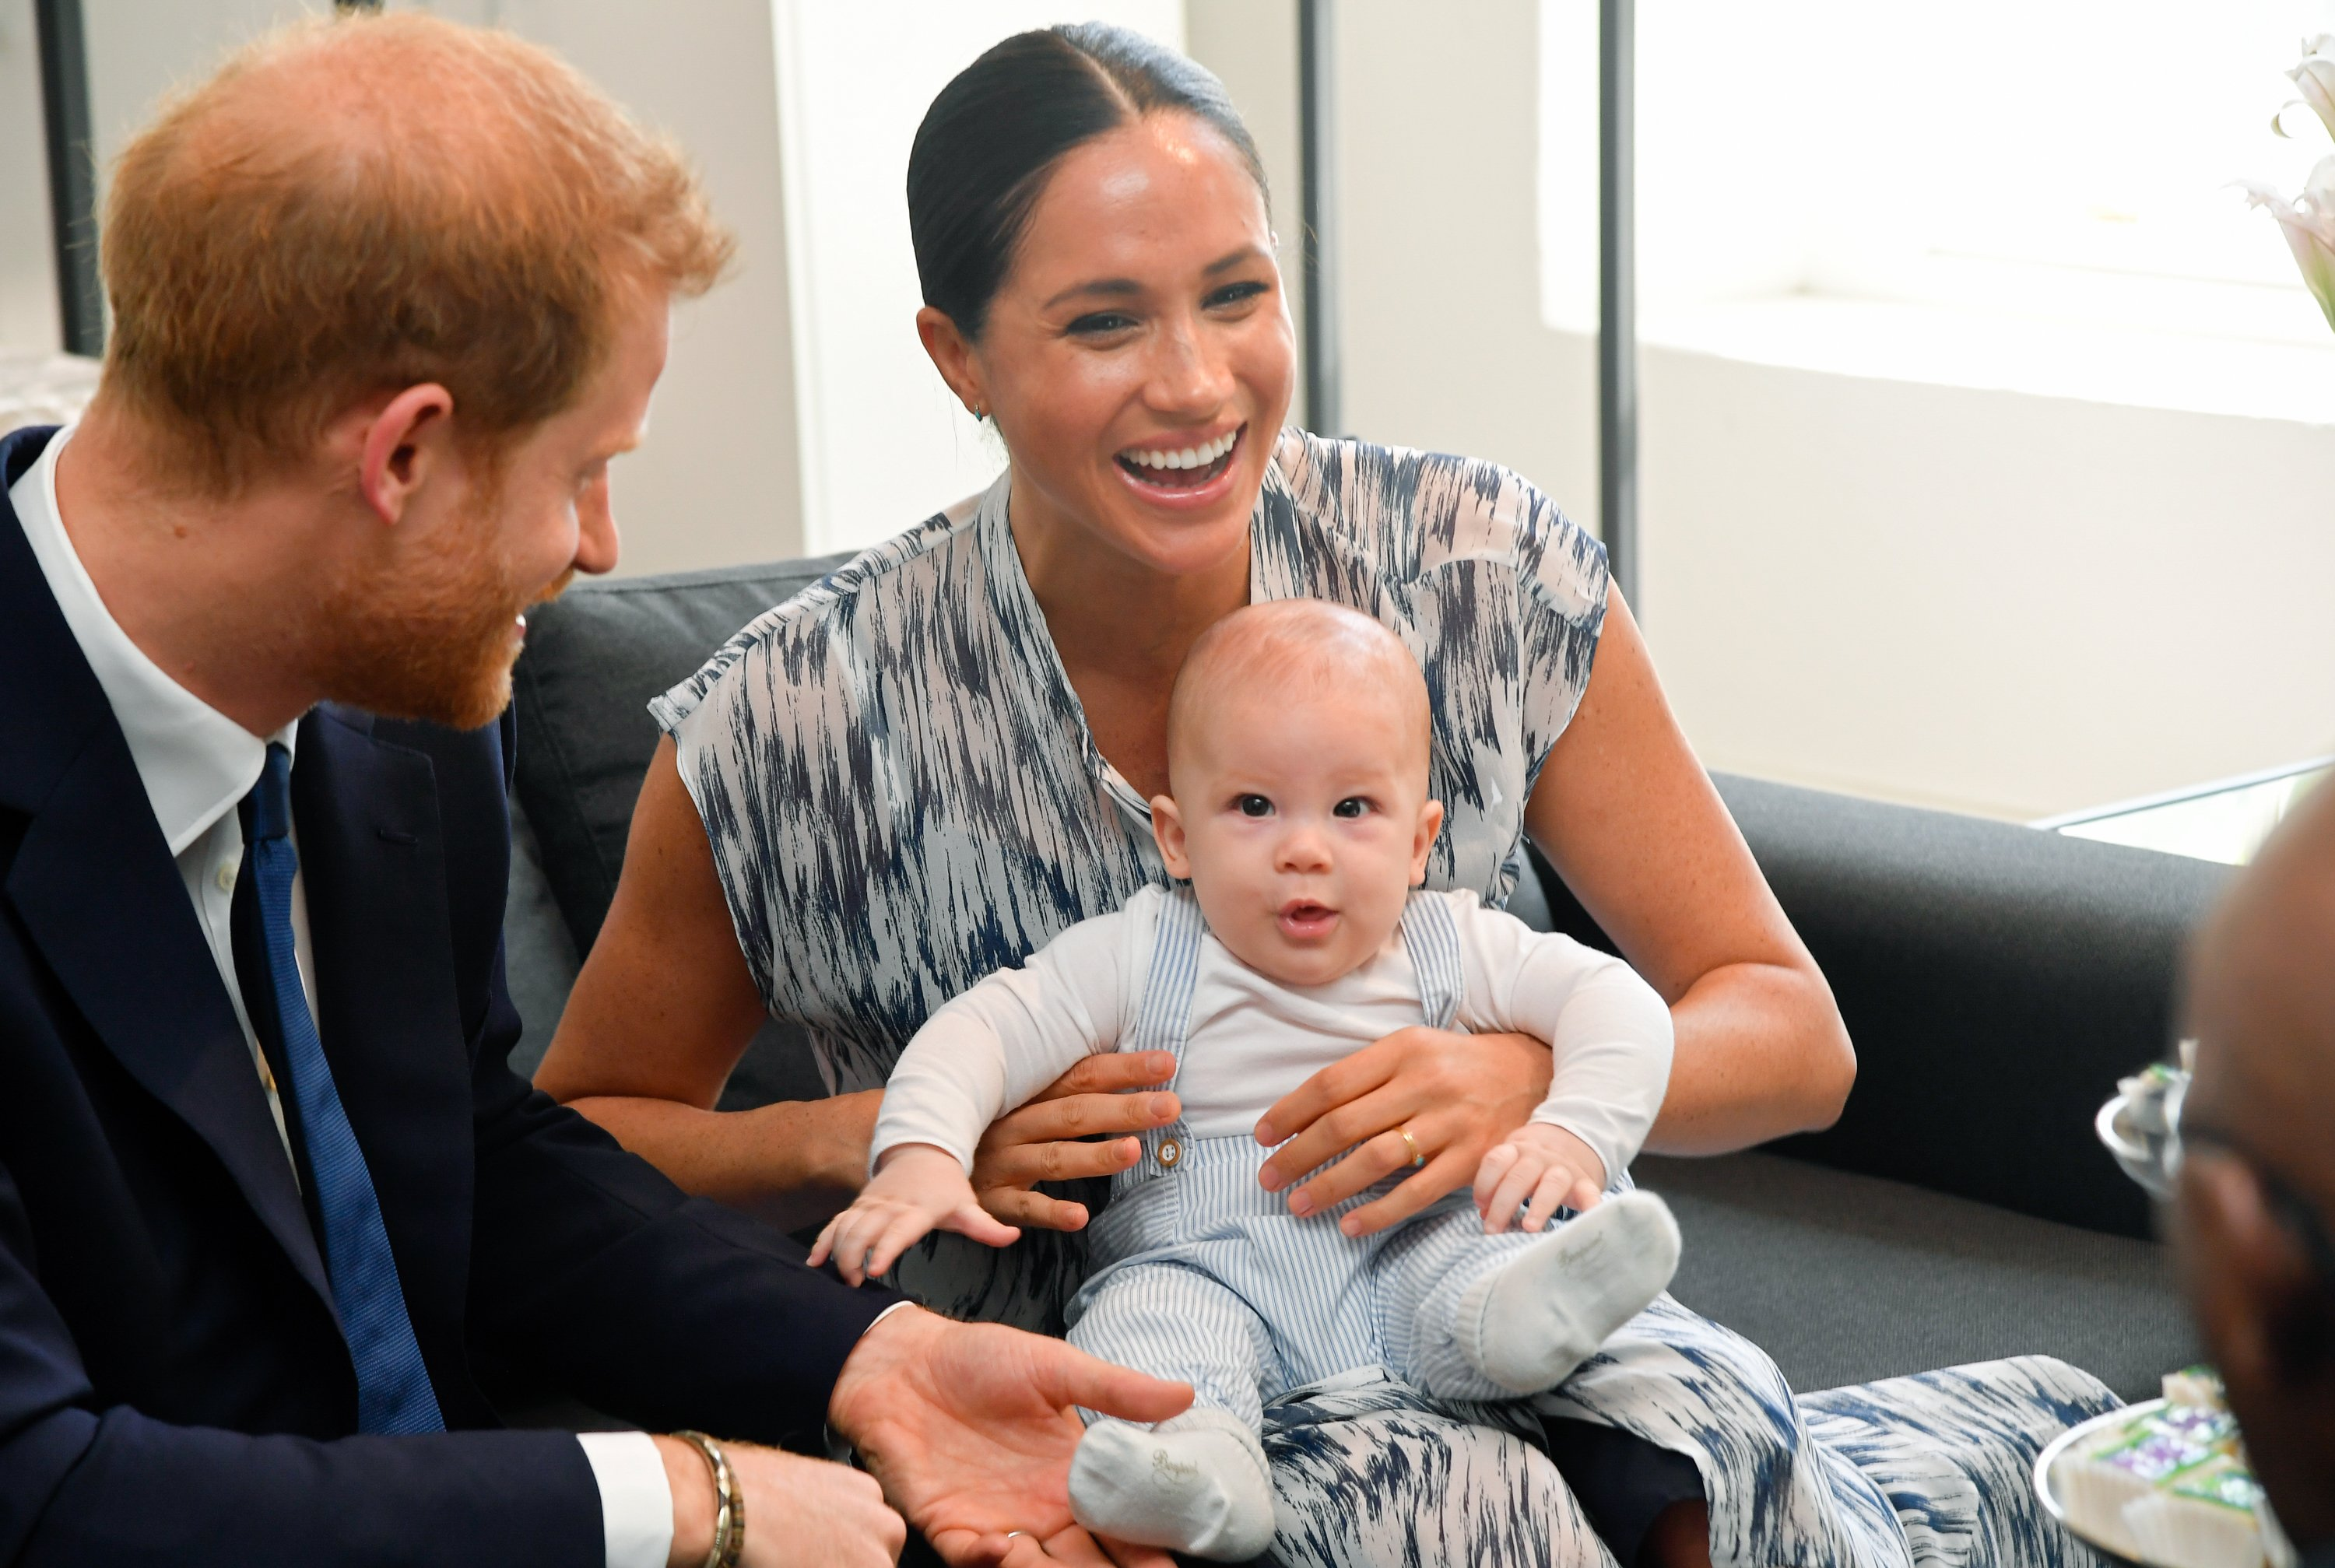 Prince Harry, Meghan Markle and their son Archie Mountbatten-Windsor during a meeting with Archbishop Desmond Tutu  at the Desmond & Leah Tutu Legacy Foundation | Photo: Toby Melville/Pool/Samir Hussein/WireImage